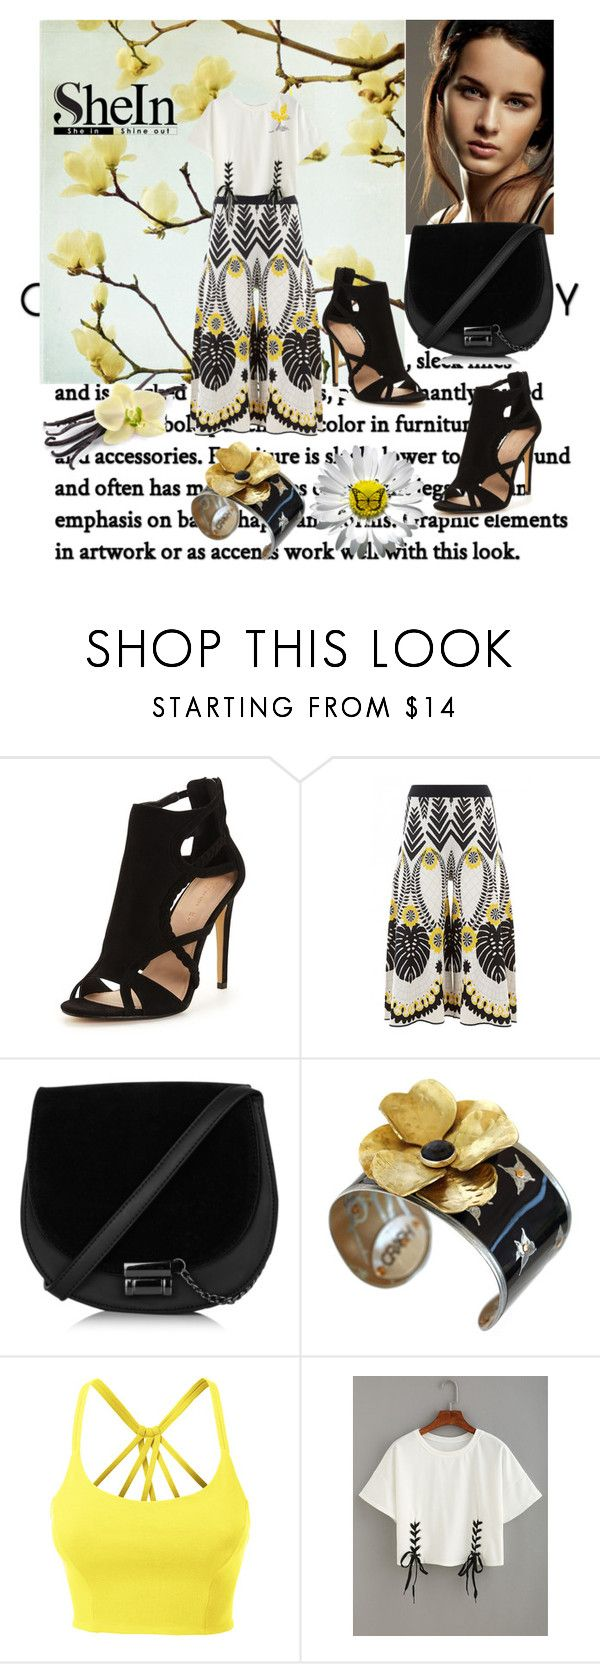 """Shein"" by vaslida ❤ liked on Polyvore featuring Temperley London, Maserati, LE3NO and Marni"